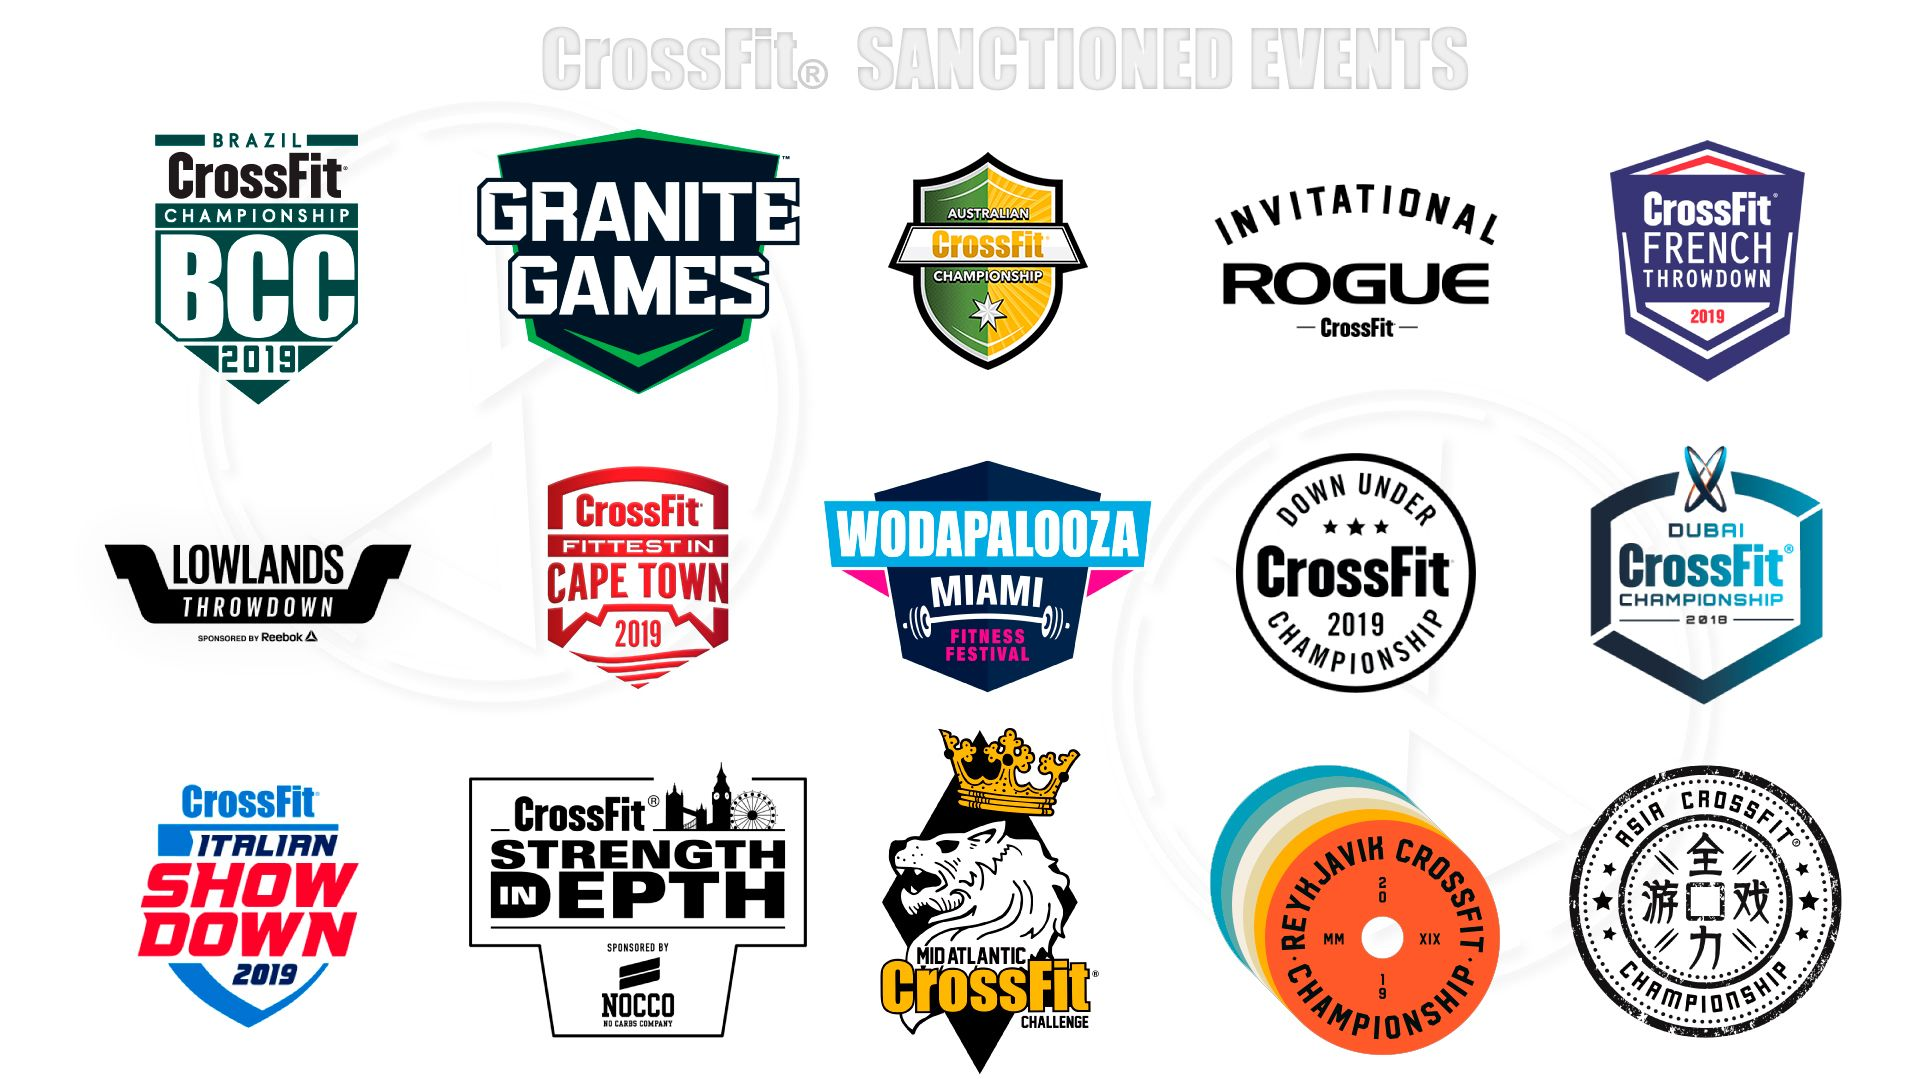 Crossfit Sanctioned Events 2019